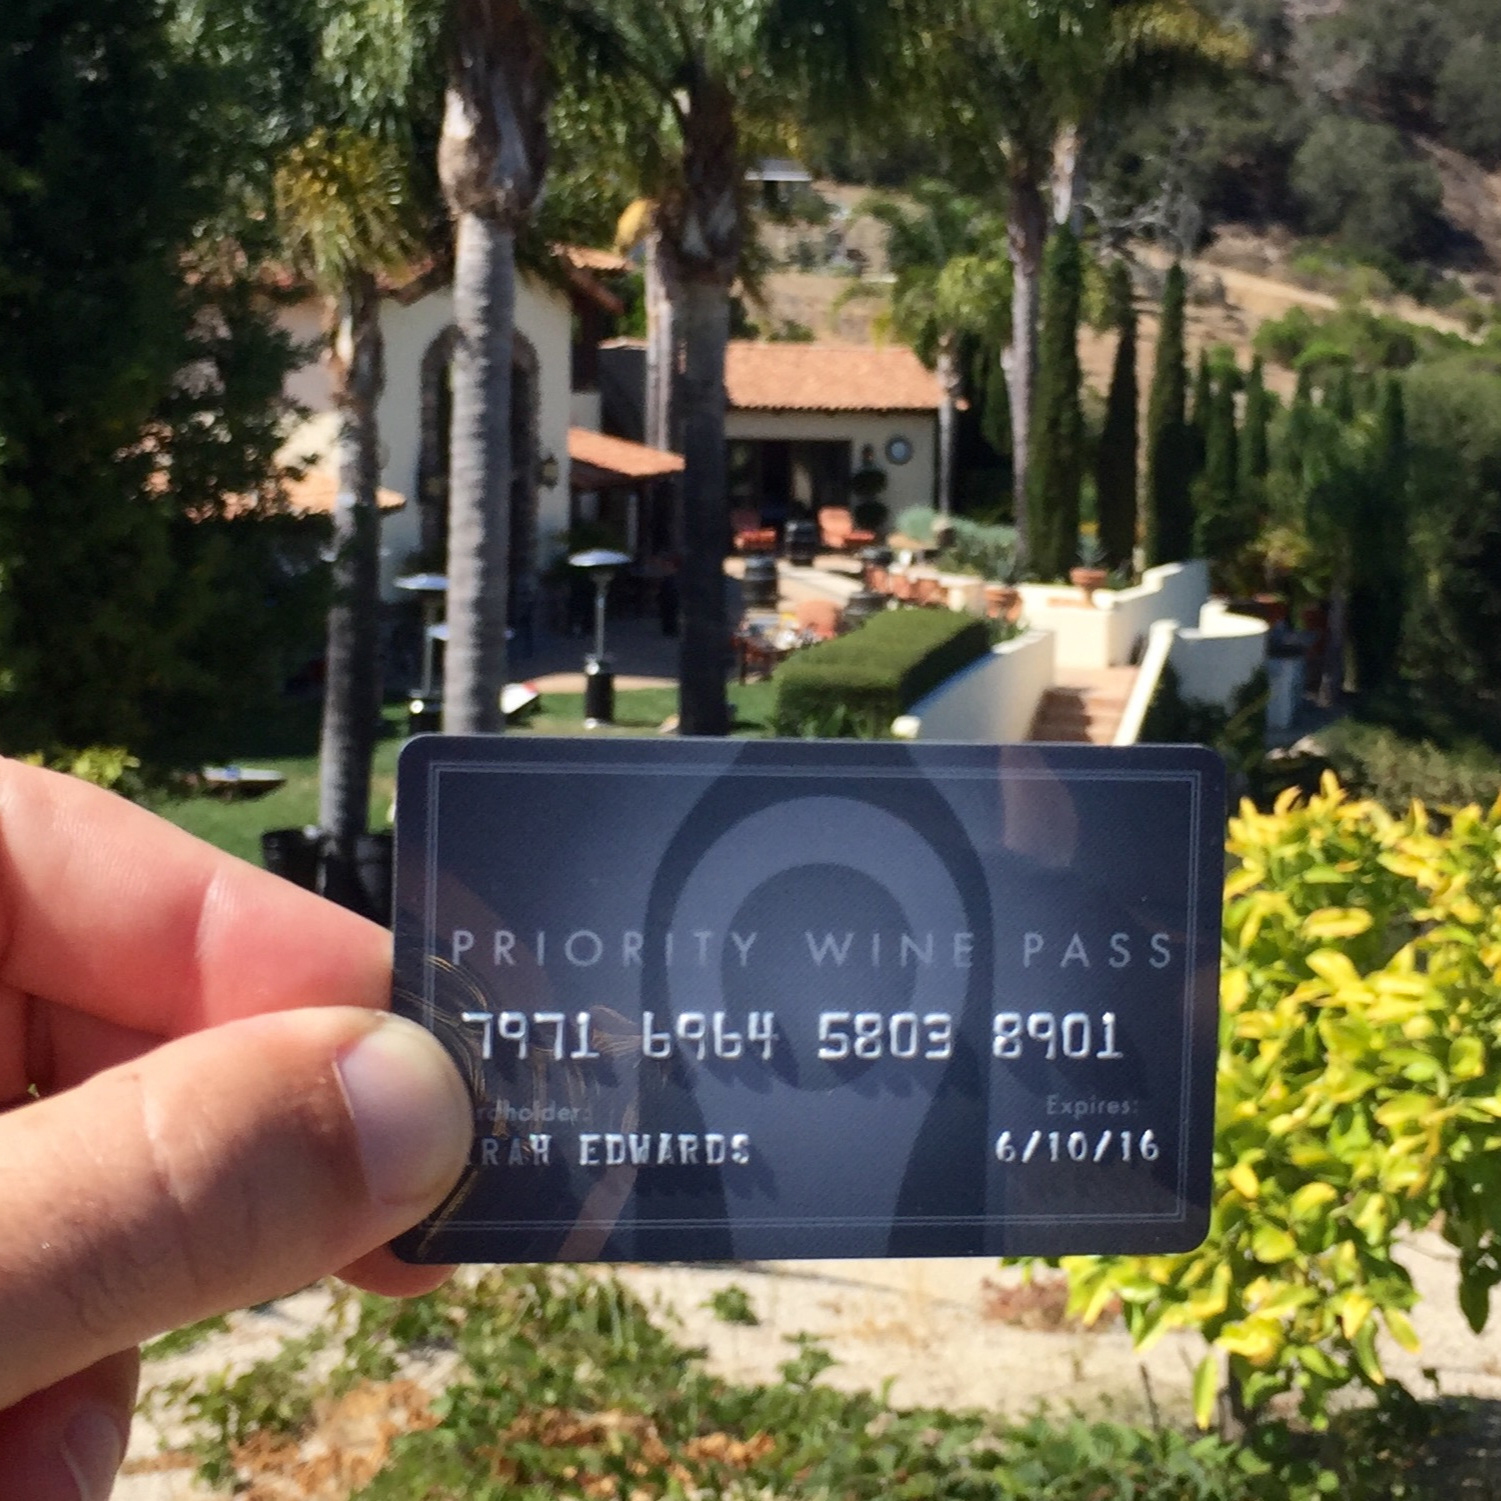 The Priority Wine Pass for Napa Winery Discounts - Recommeded by BevMo